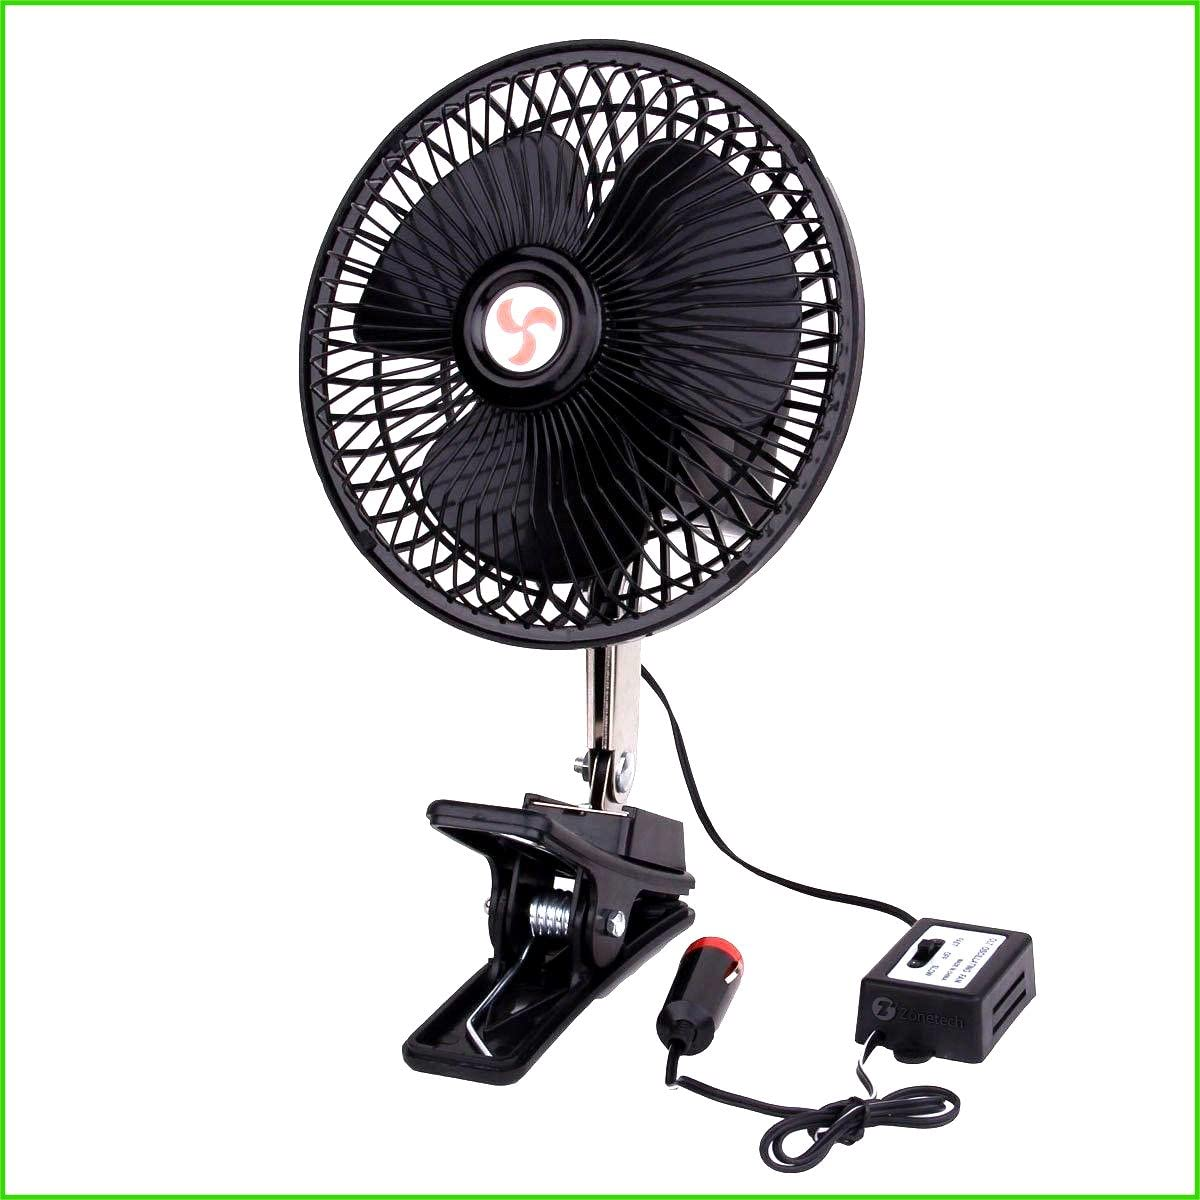 House Deals Vehicle Portable Fan Car Truck Easy Attachment Cooling Clip System Dashboard Oscillating 12V